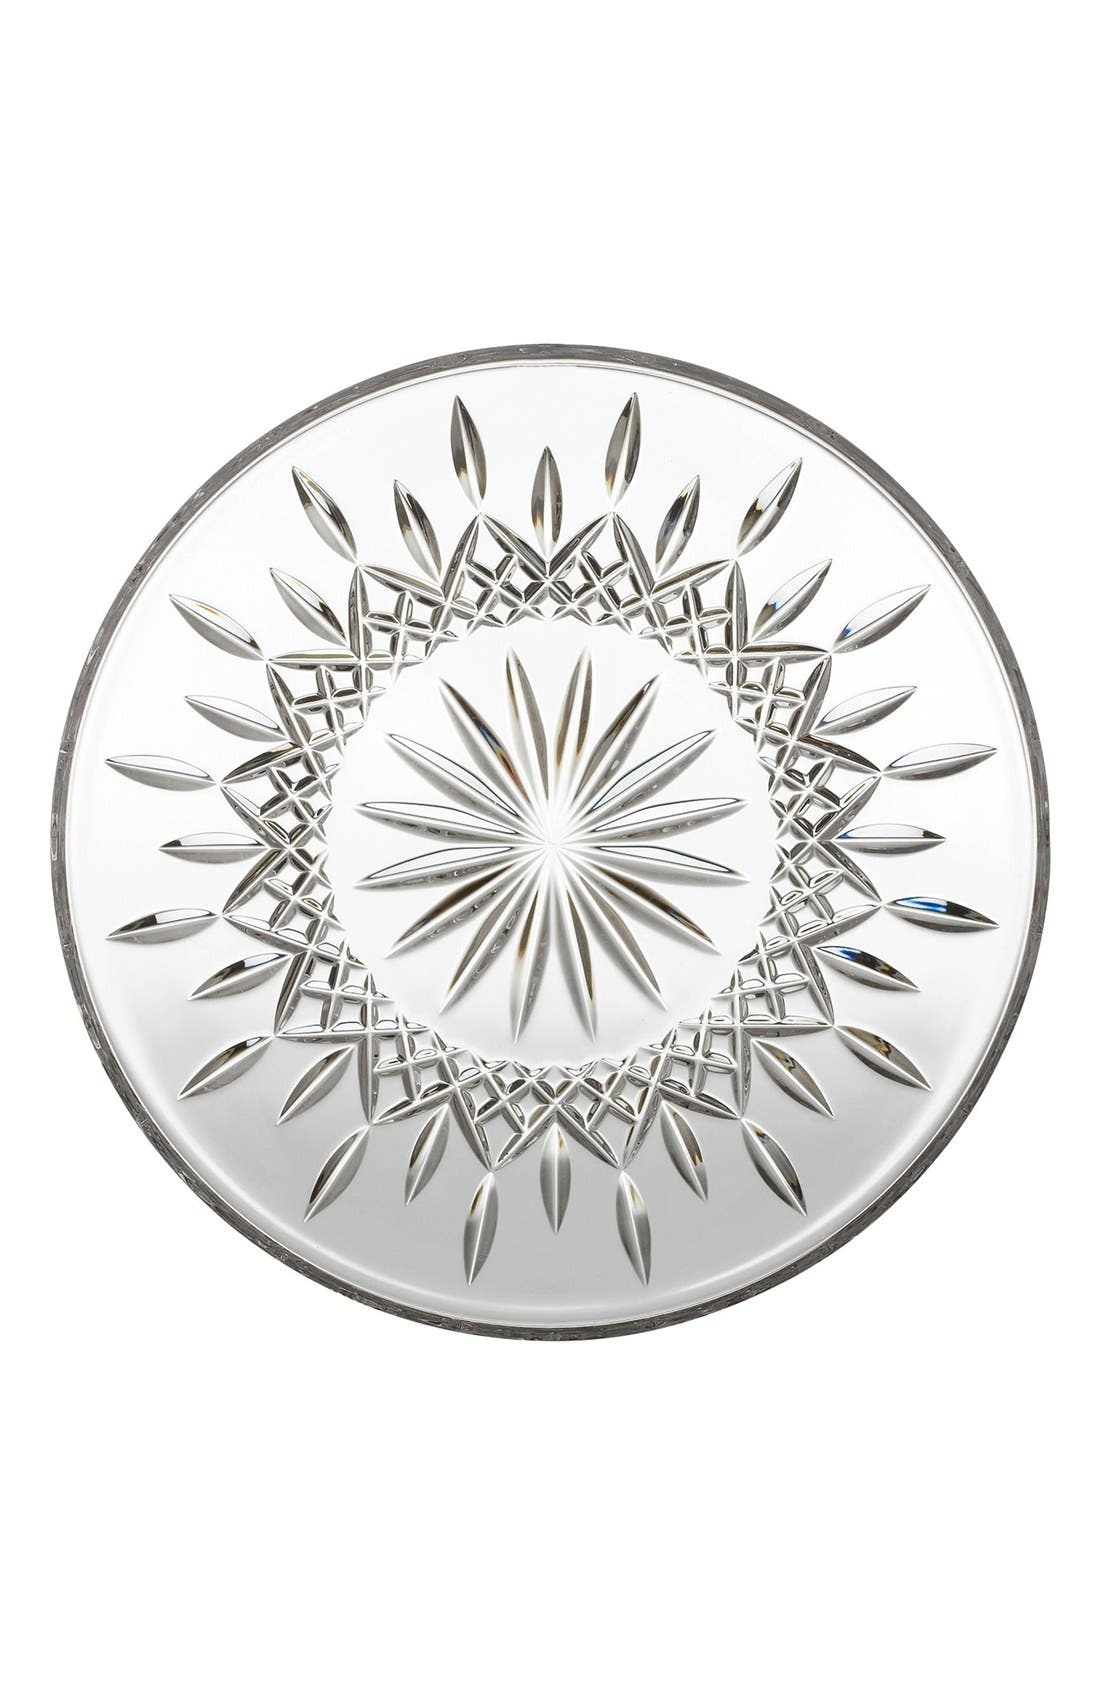 'Lismore' Lead Crystal Cake Plate,                             Main thumbnail 1, color,                             Clear